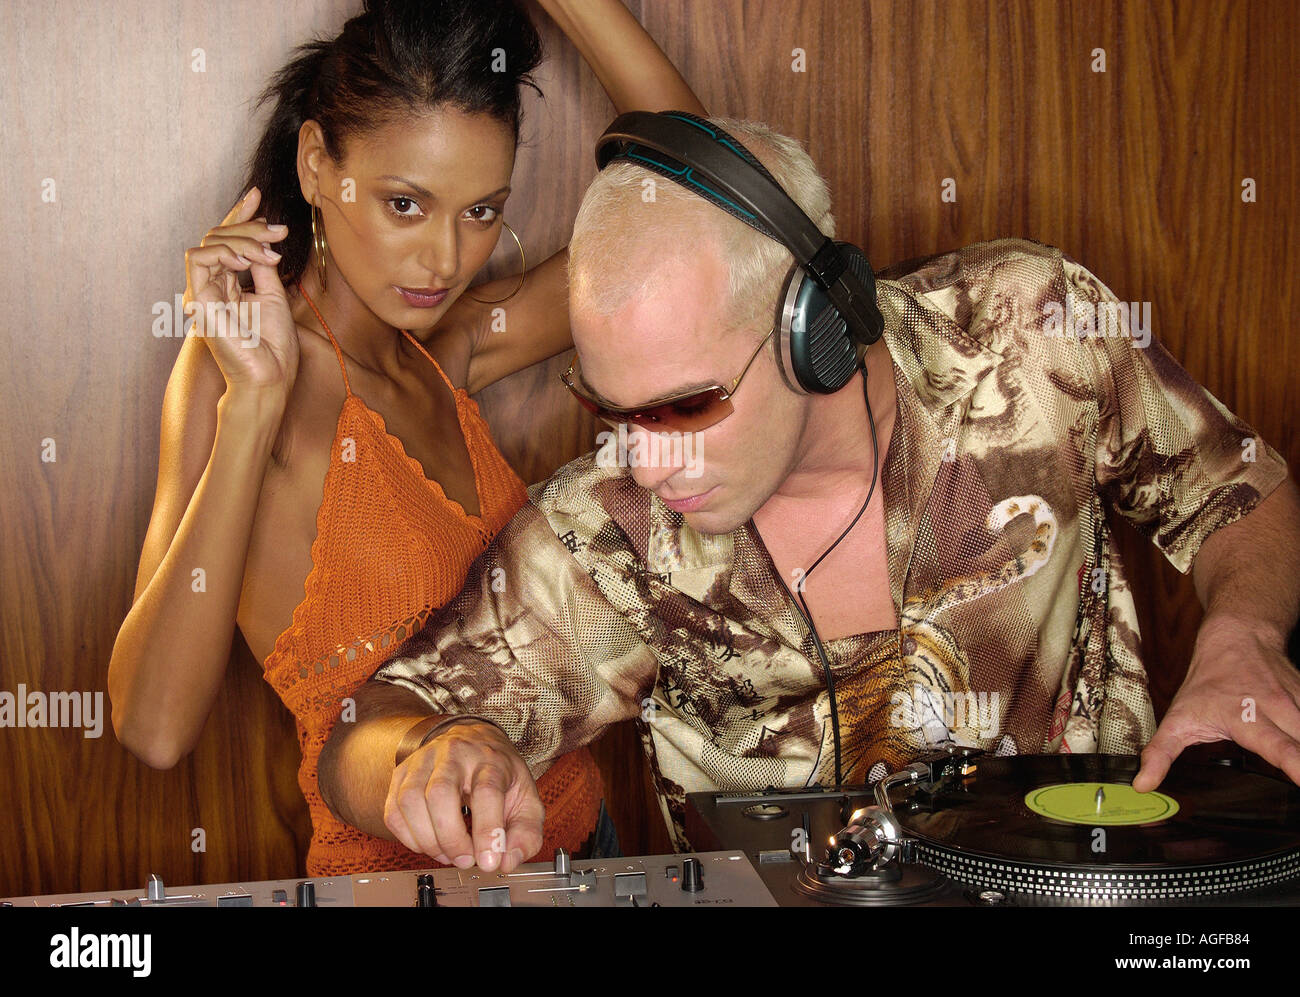 Disc jockey - Stock Image